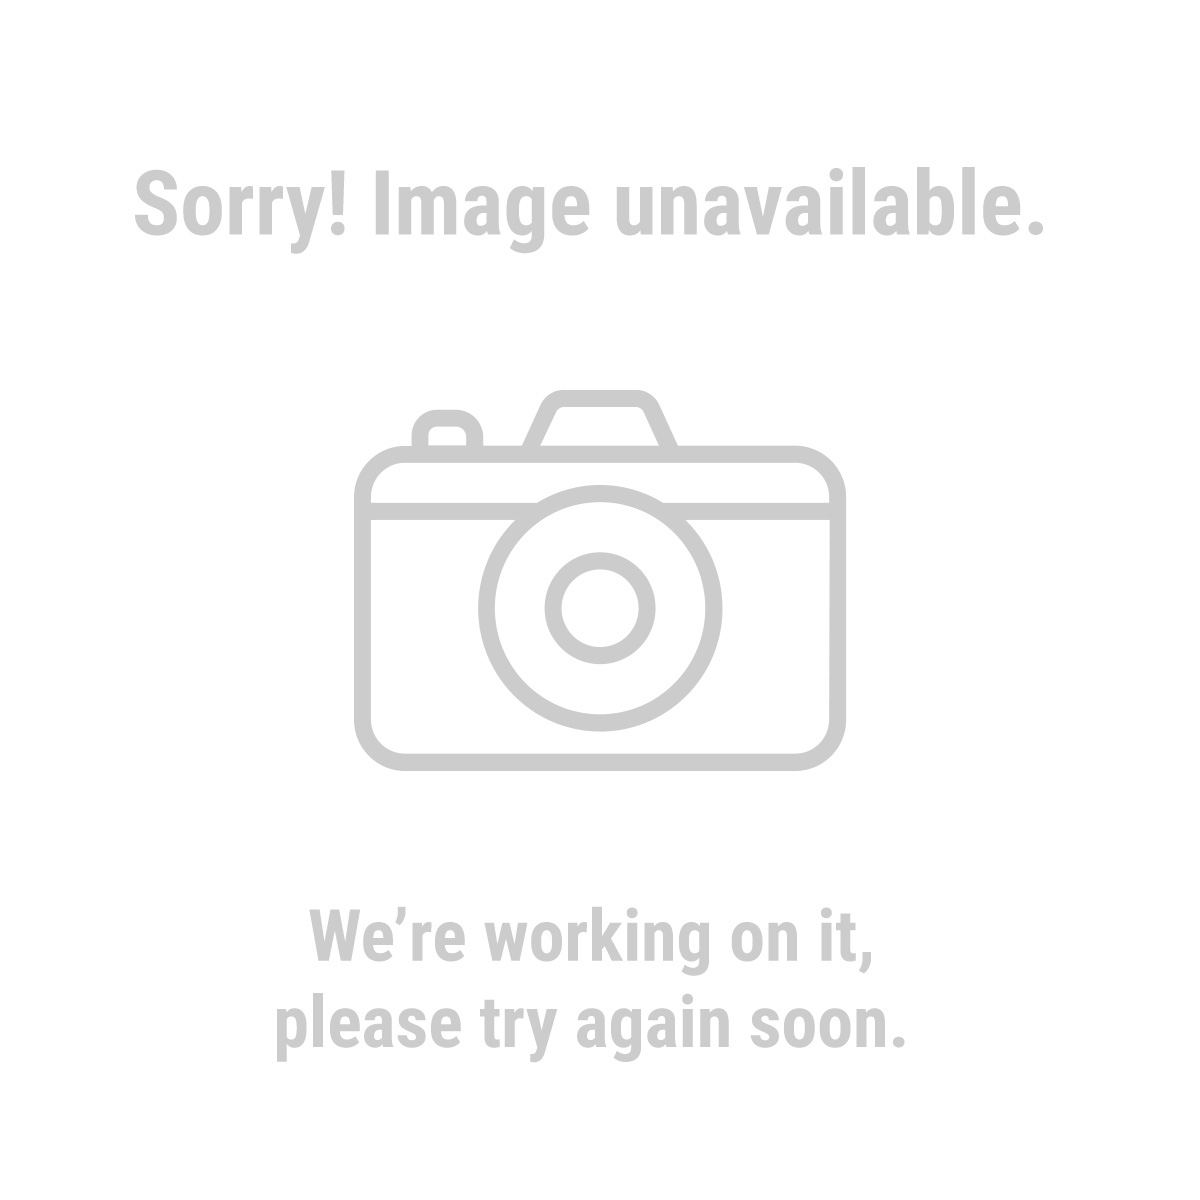 58 in x 100 ft Heavy Duty Garden Hose